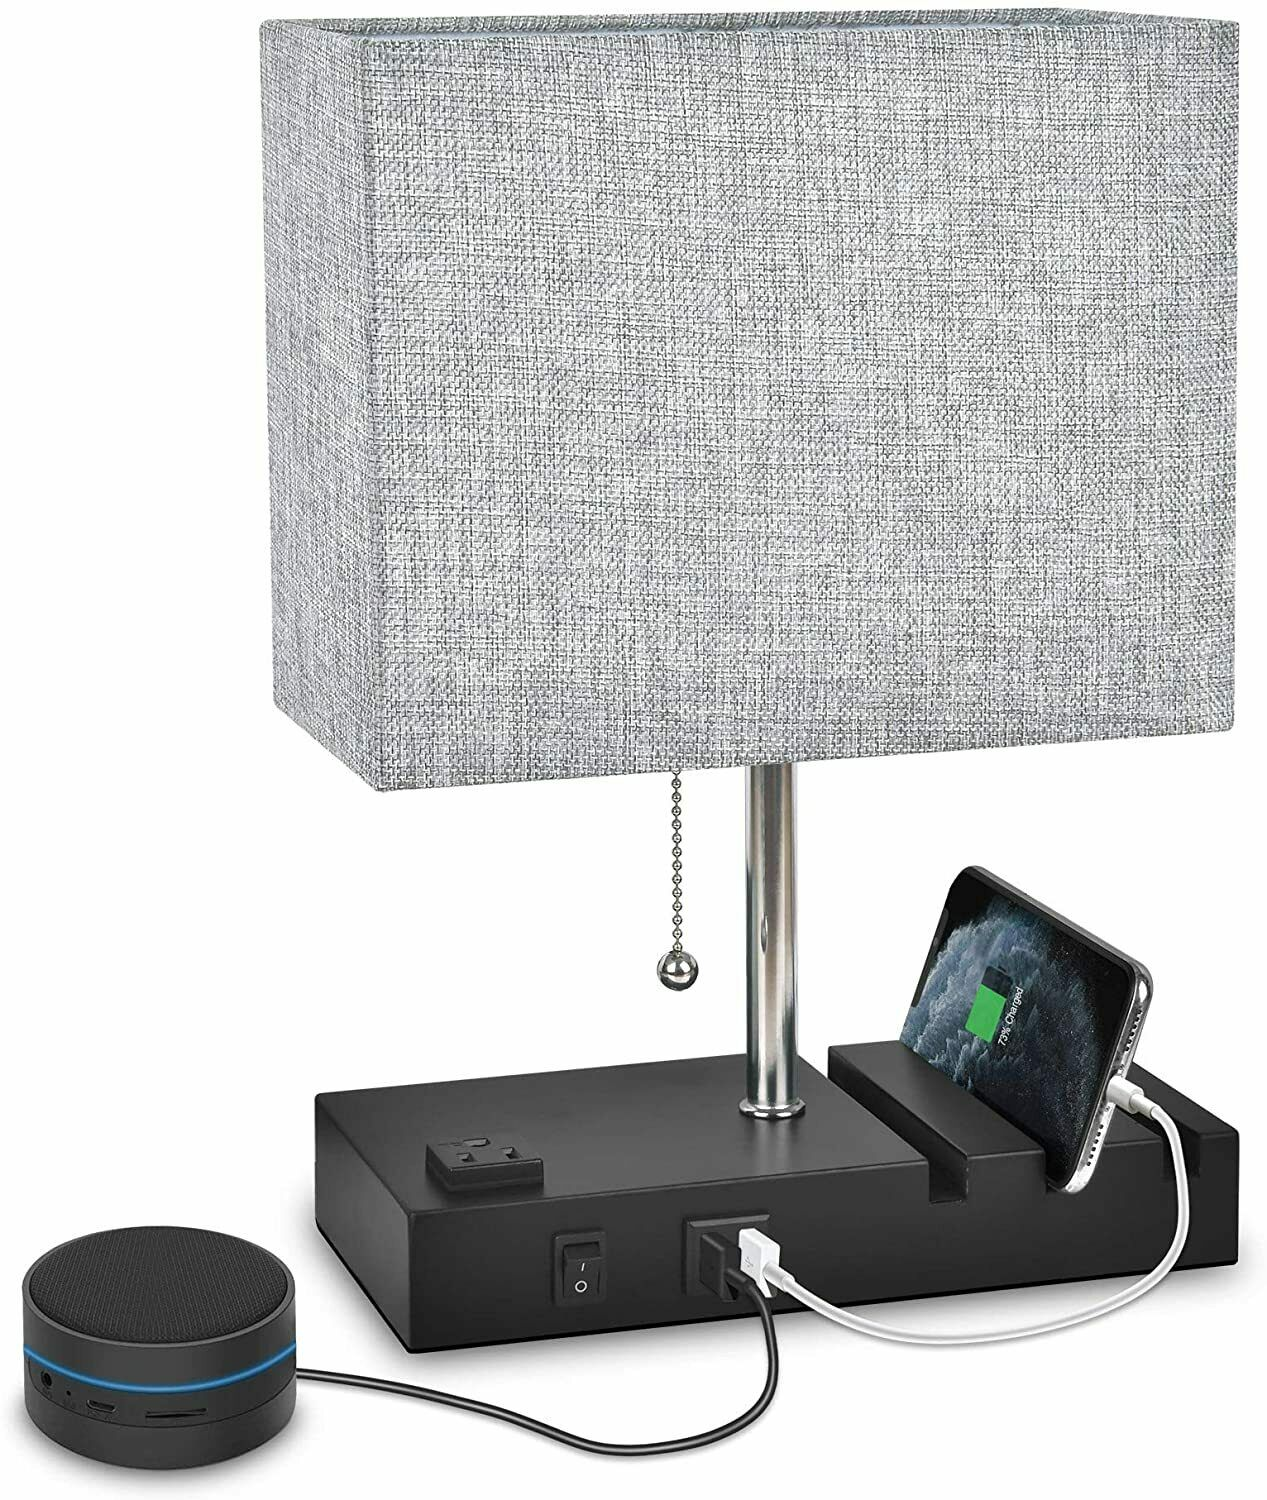 Picture of: Adair Table Lamp For Sale Online Ebay